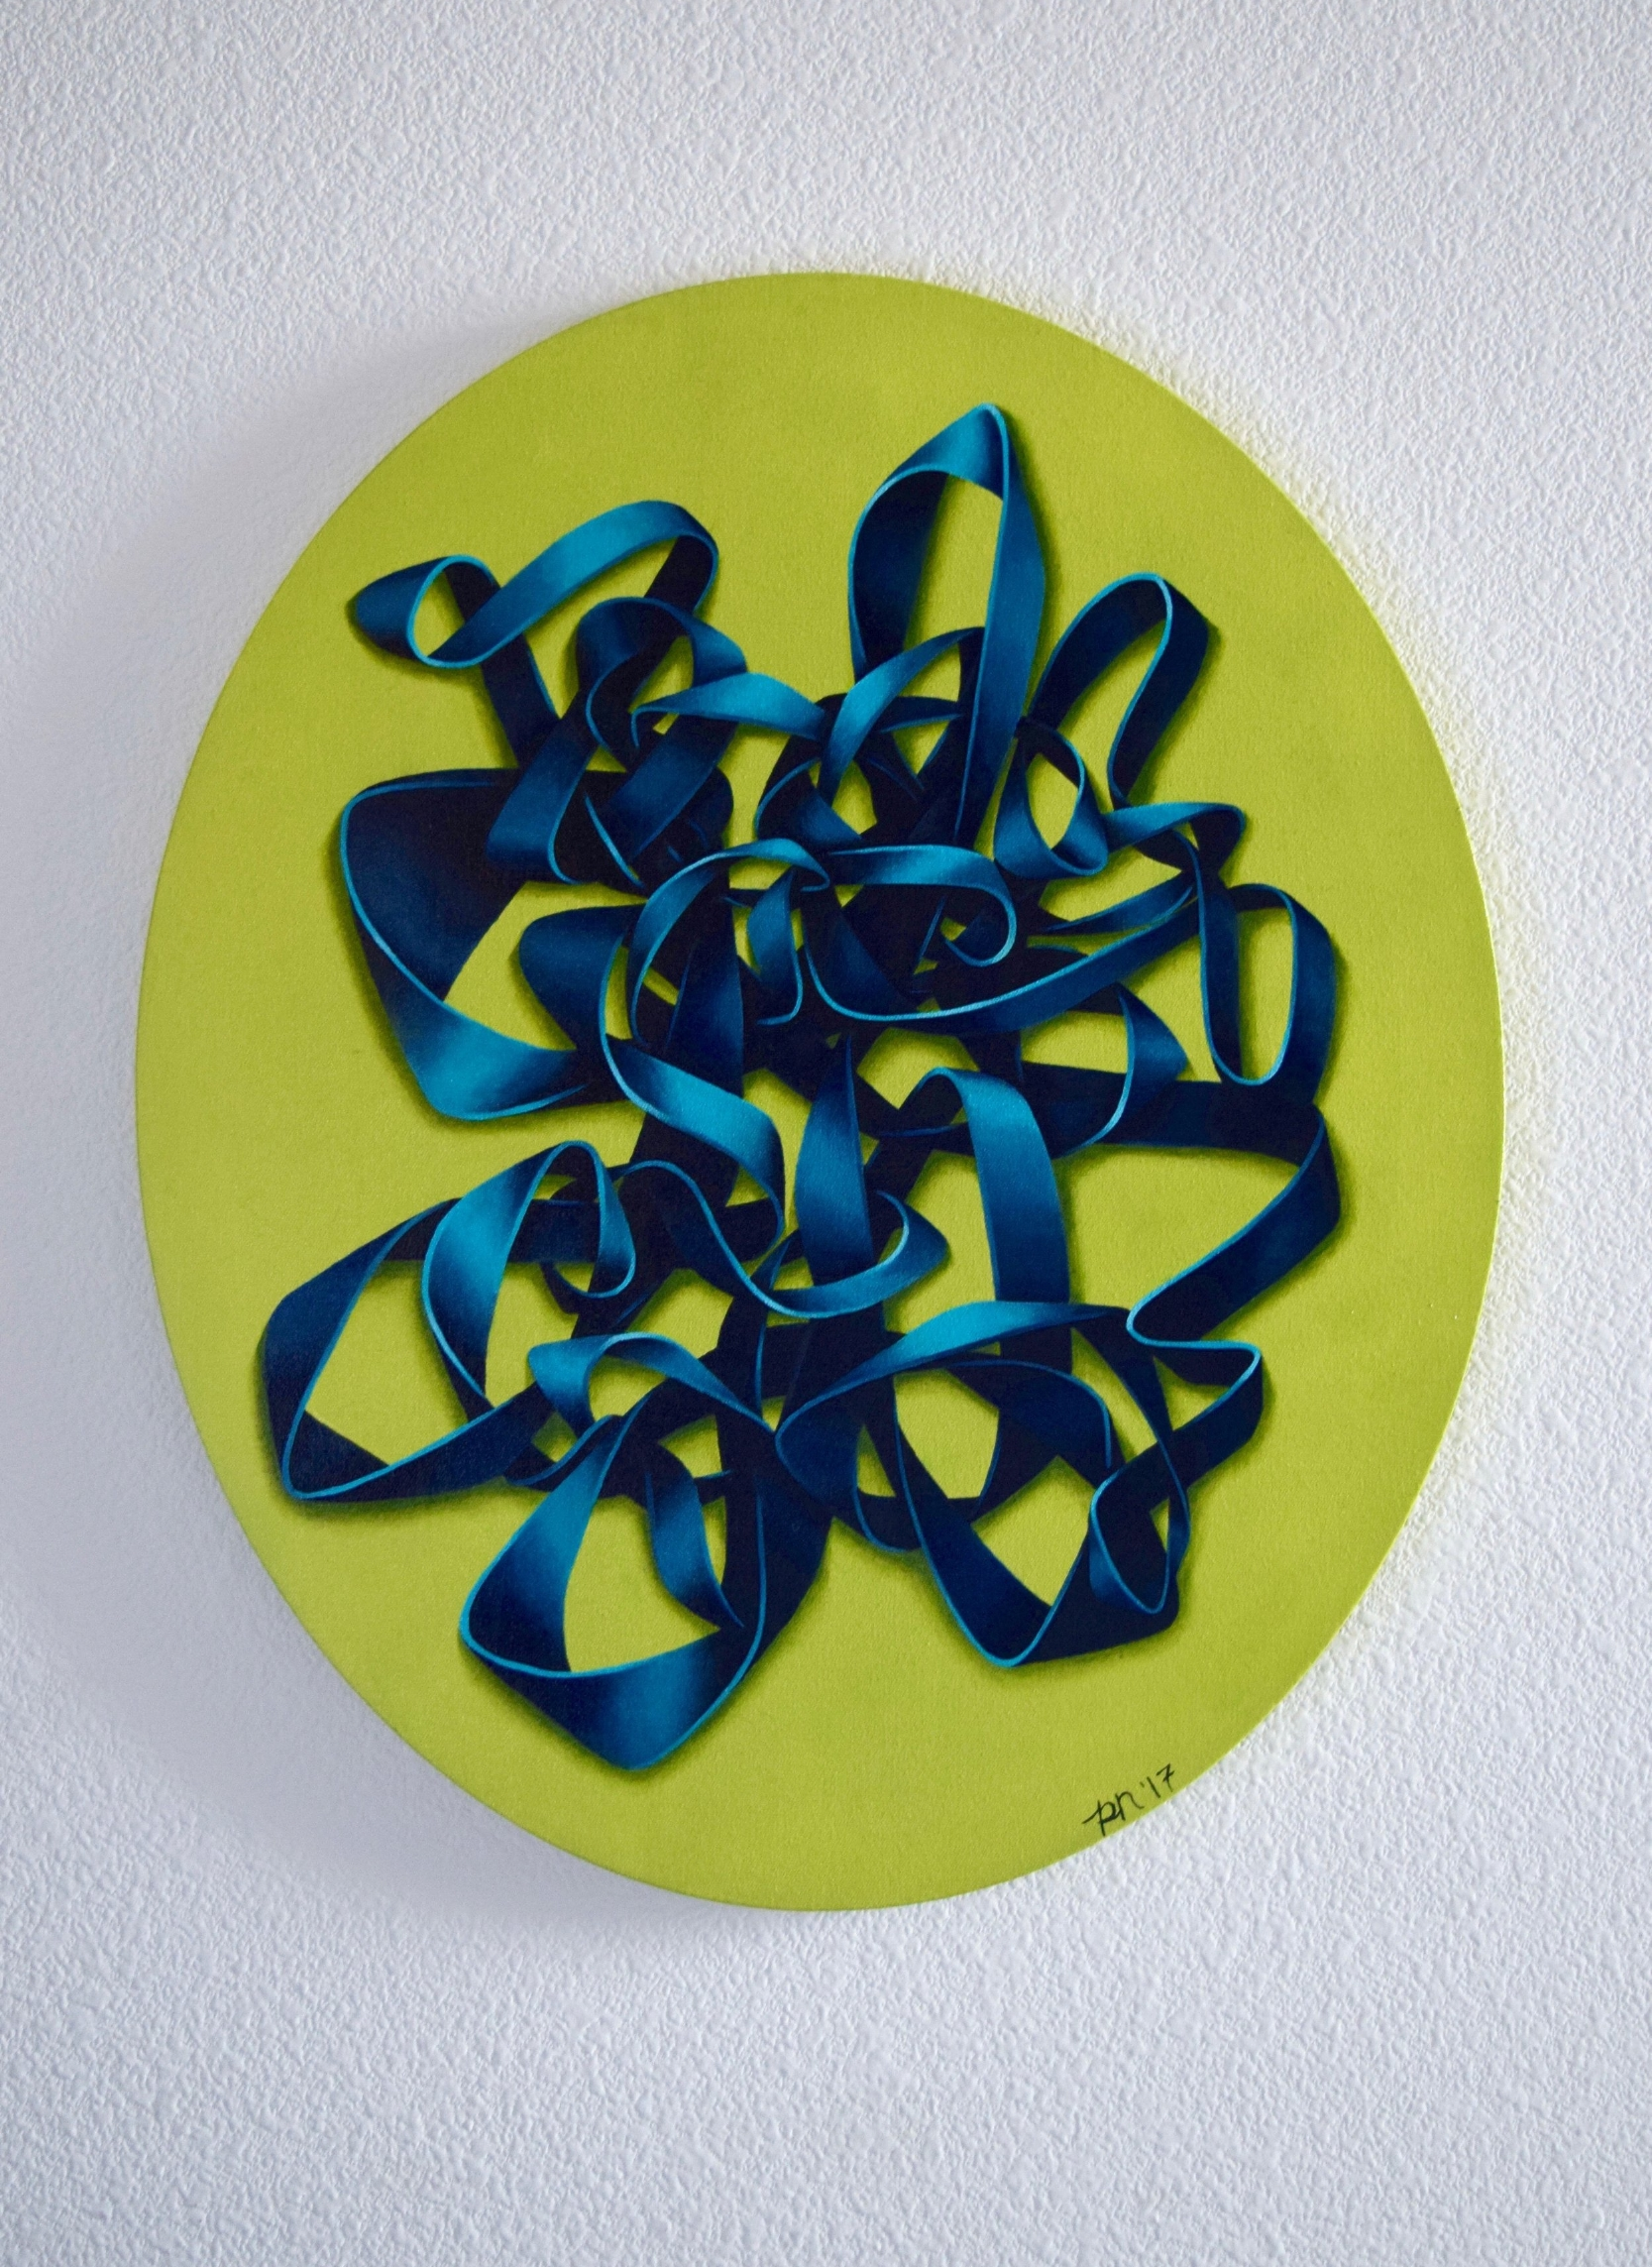 TEAL KNOT ON GREEN | ACRYLIC ON CANVAS |  2017 |FOR SALE - PLEASE CONTACT FOR INFORMATION